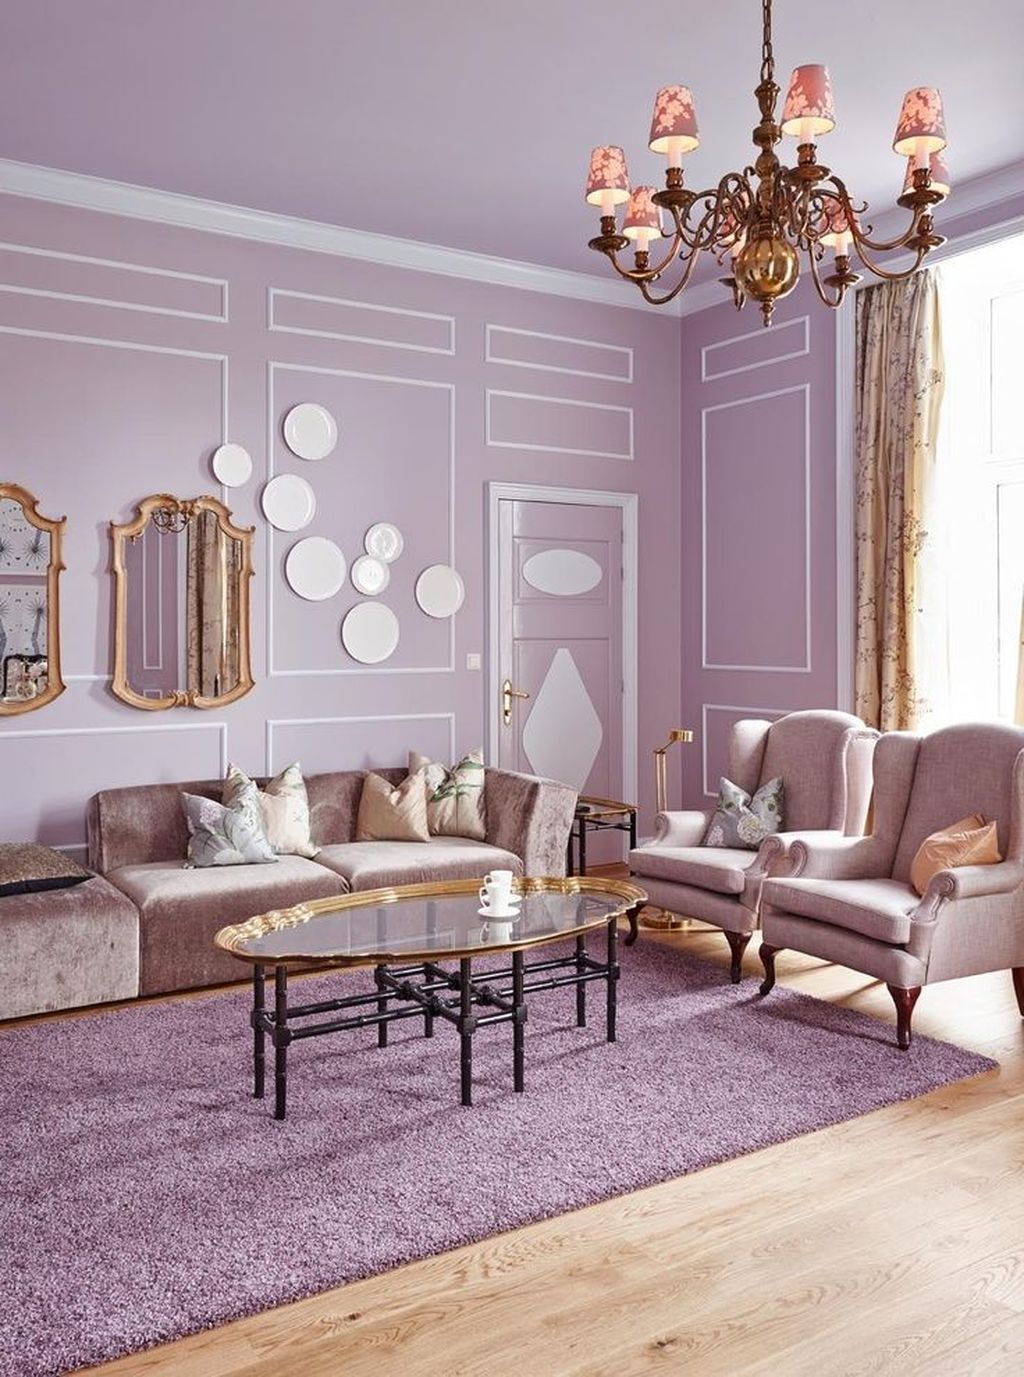 Violet Room Design: Cozy Interior Room Design Ideas With Purple Walls 21